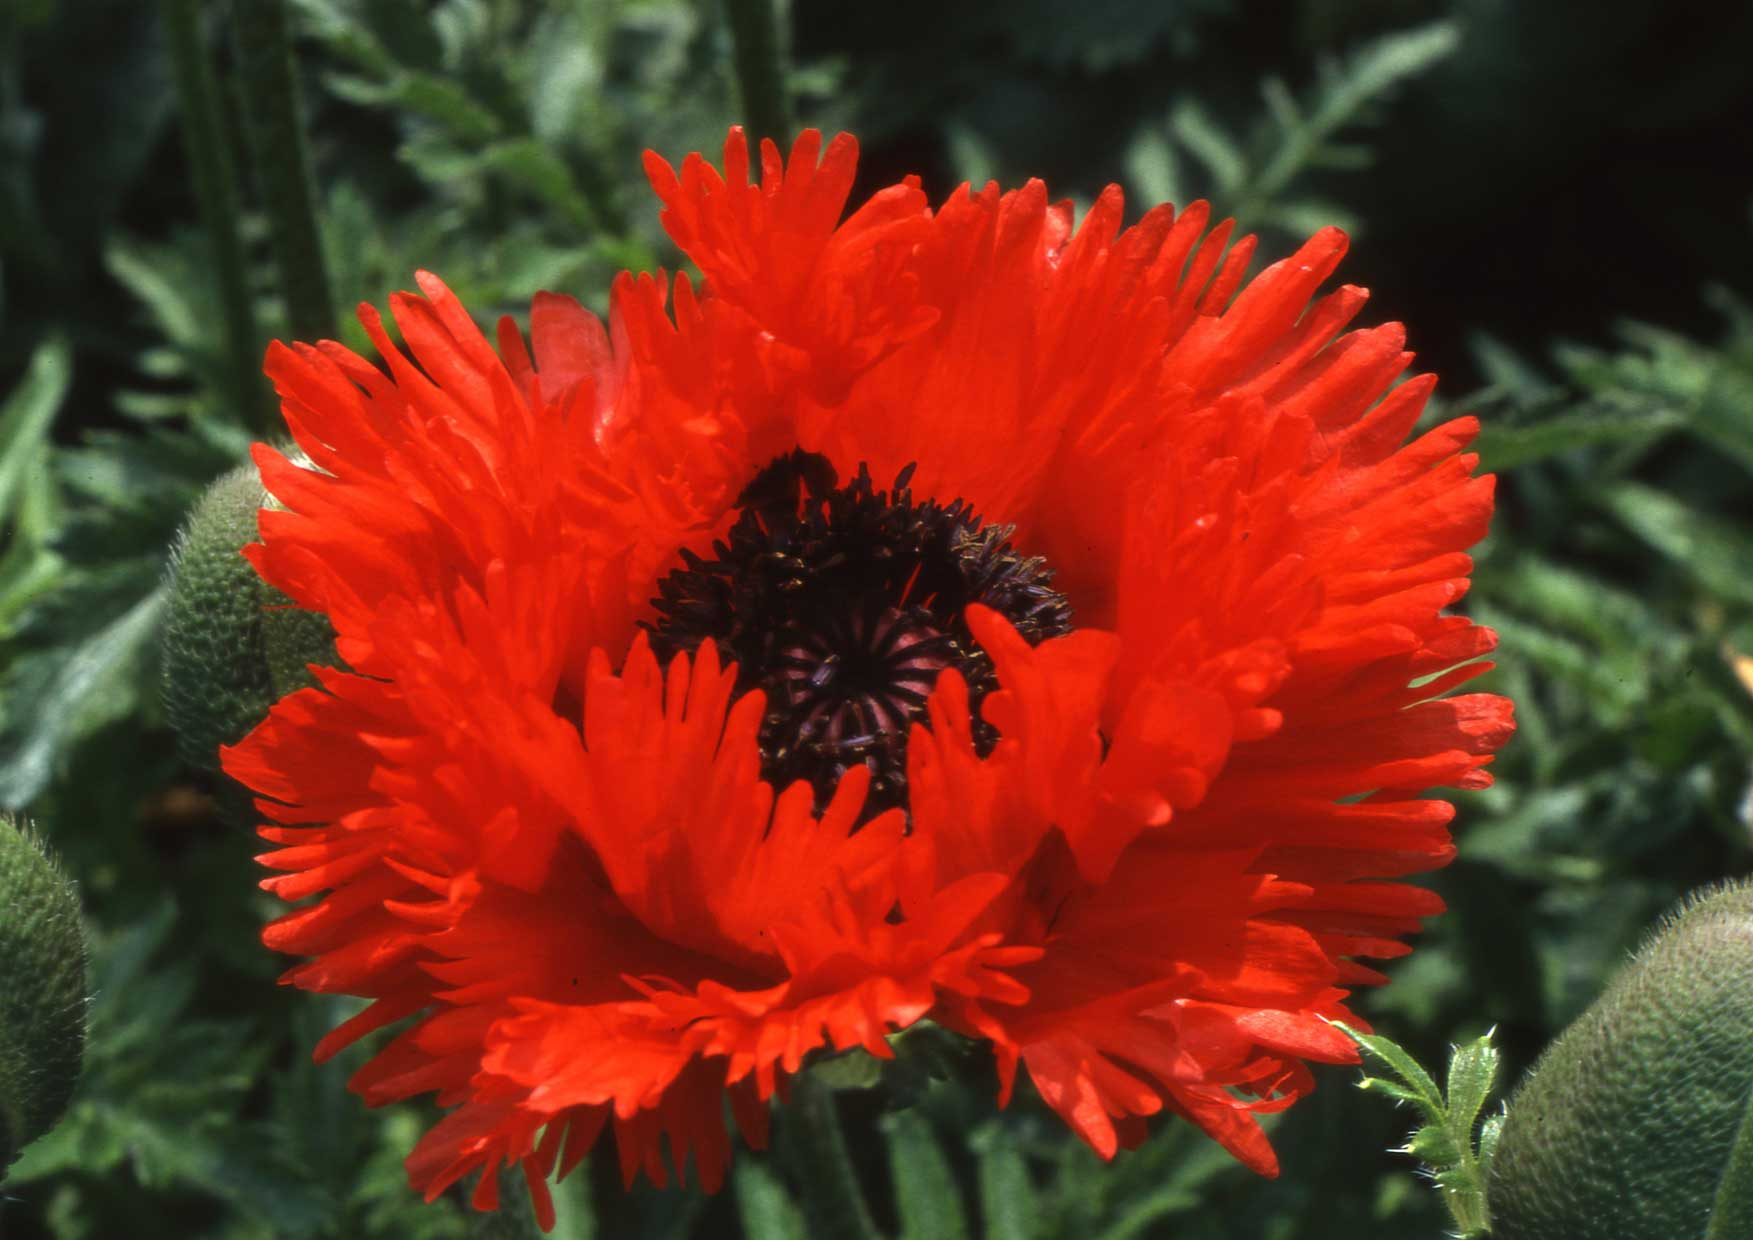 Turkenlouis produces the most intense scarlet red flowers each